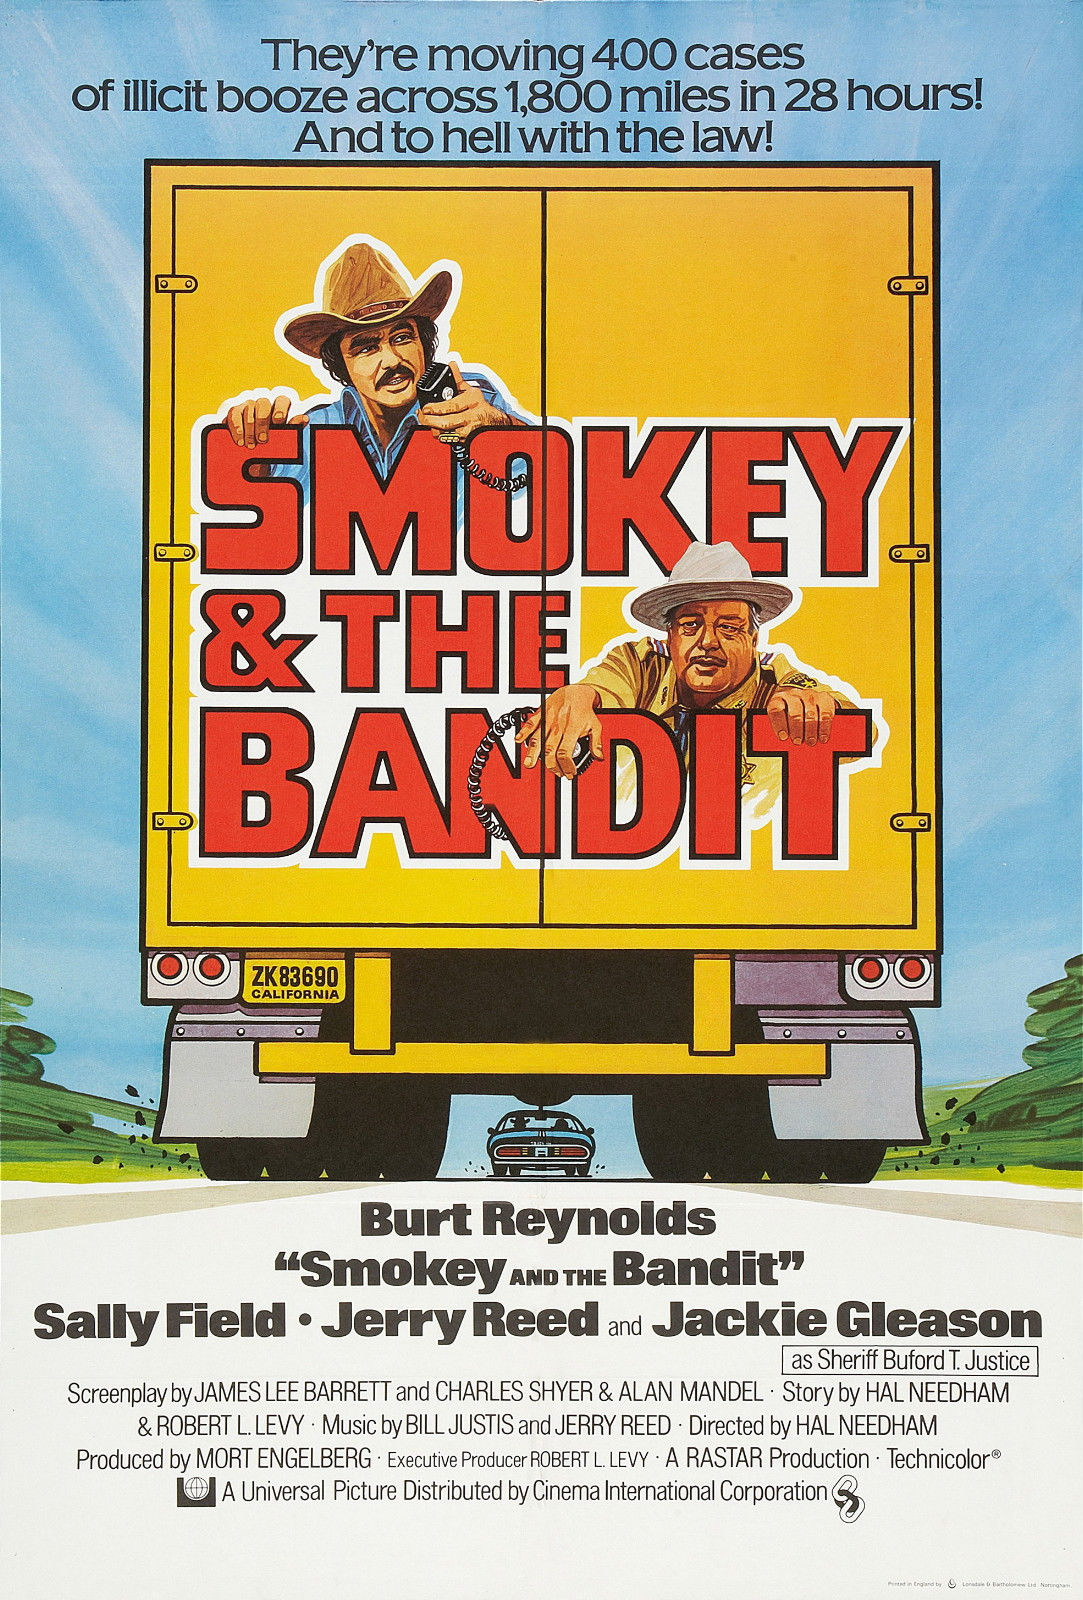 72452-SMOKEY-AND-THE-BANDIT-Movie-70-039-s-Wall-Print-Poster-Affiche